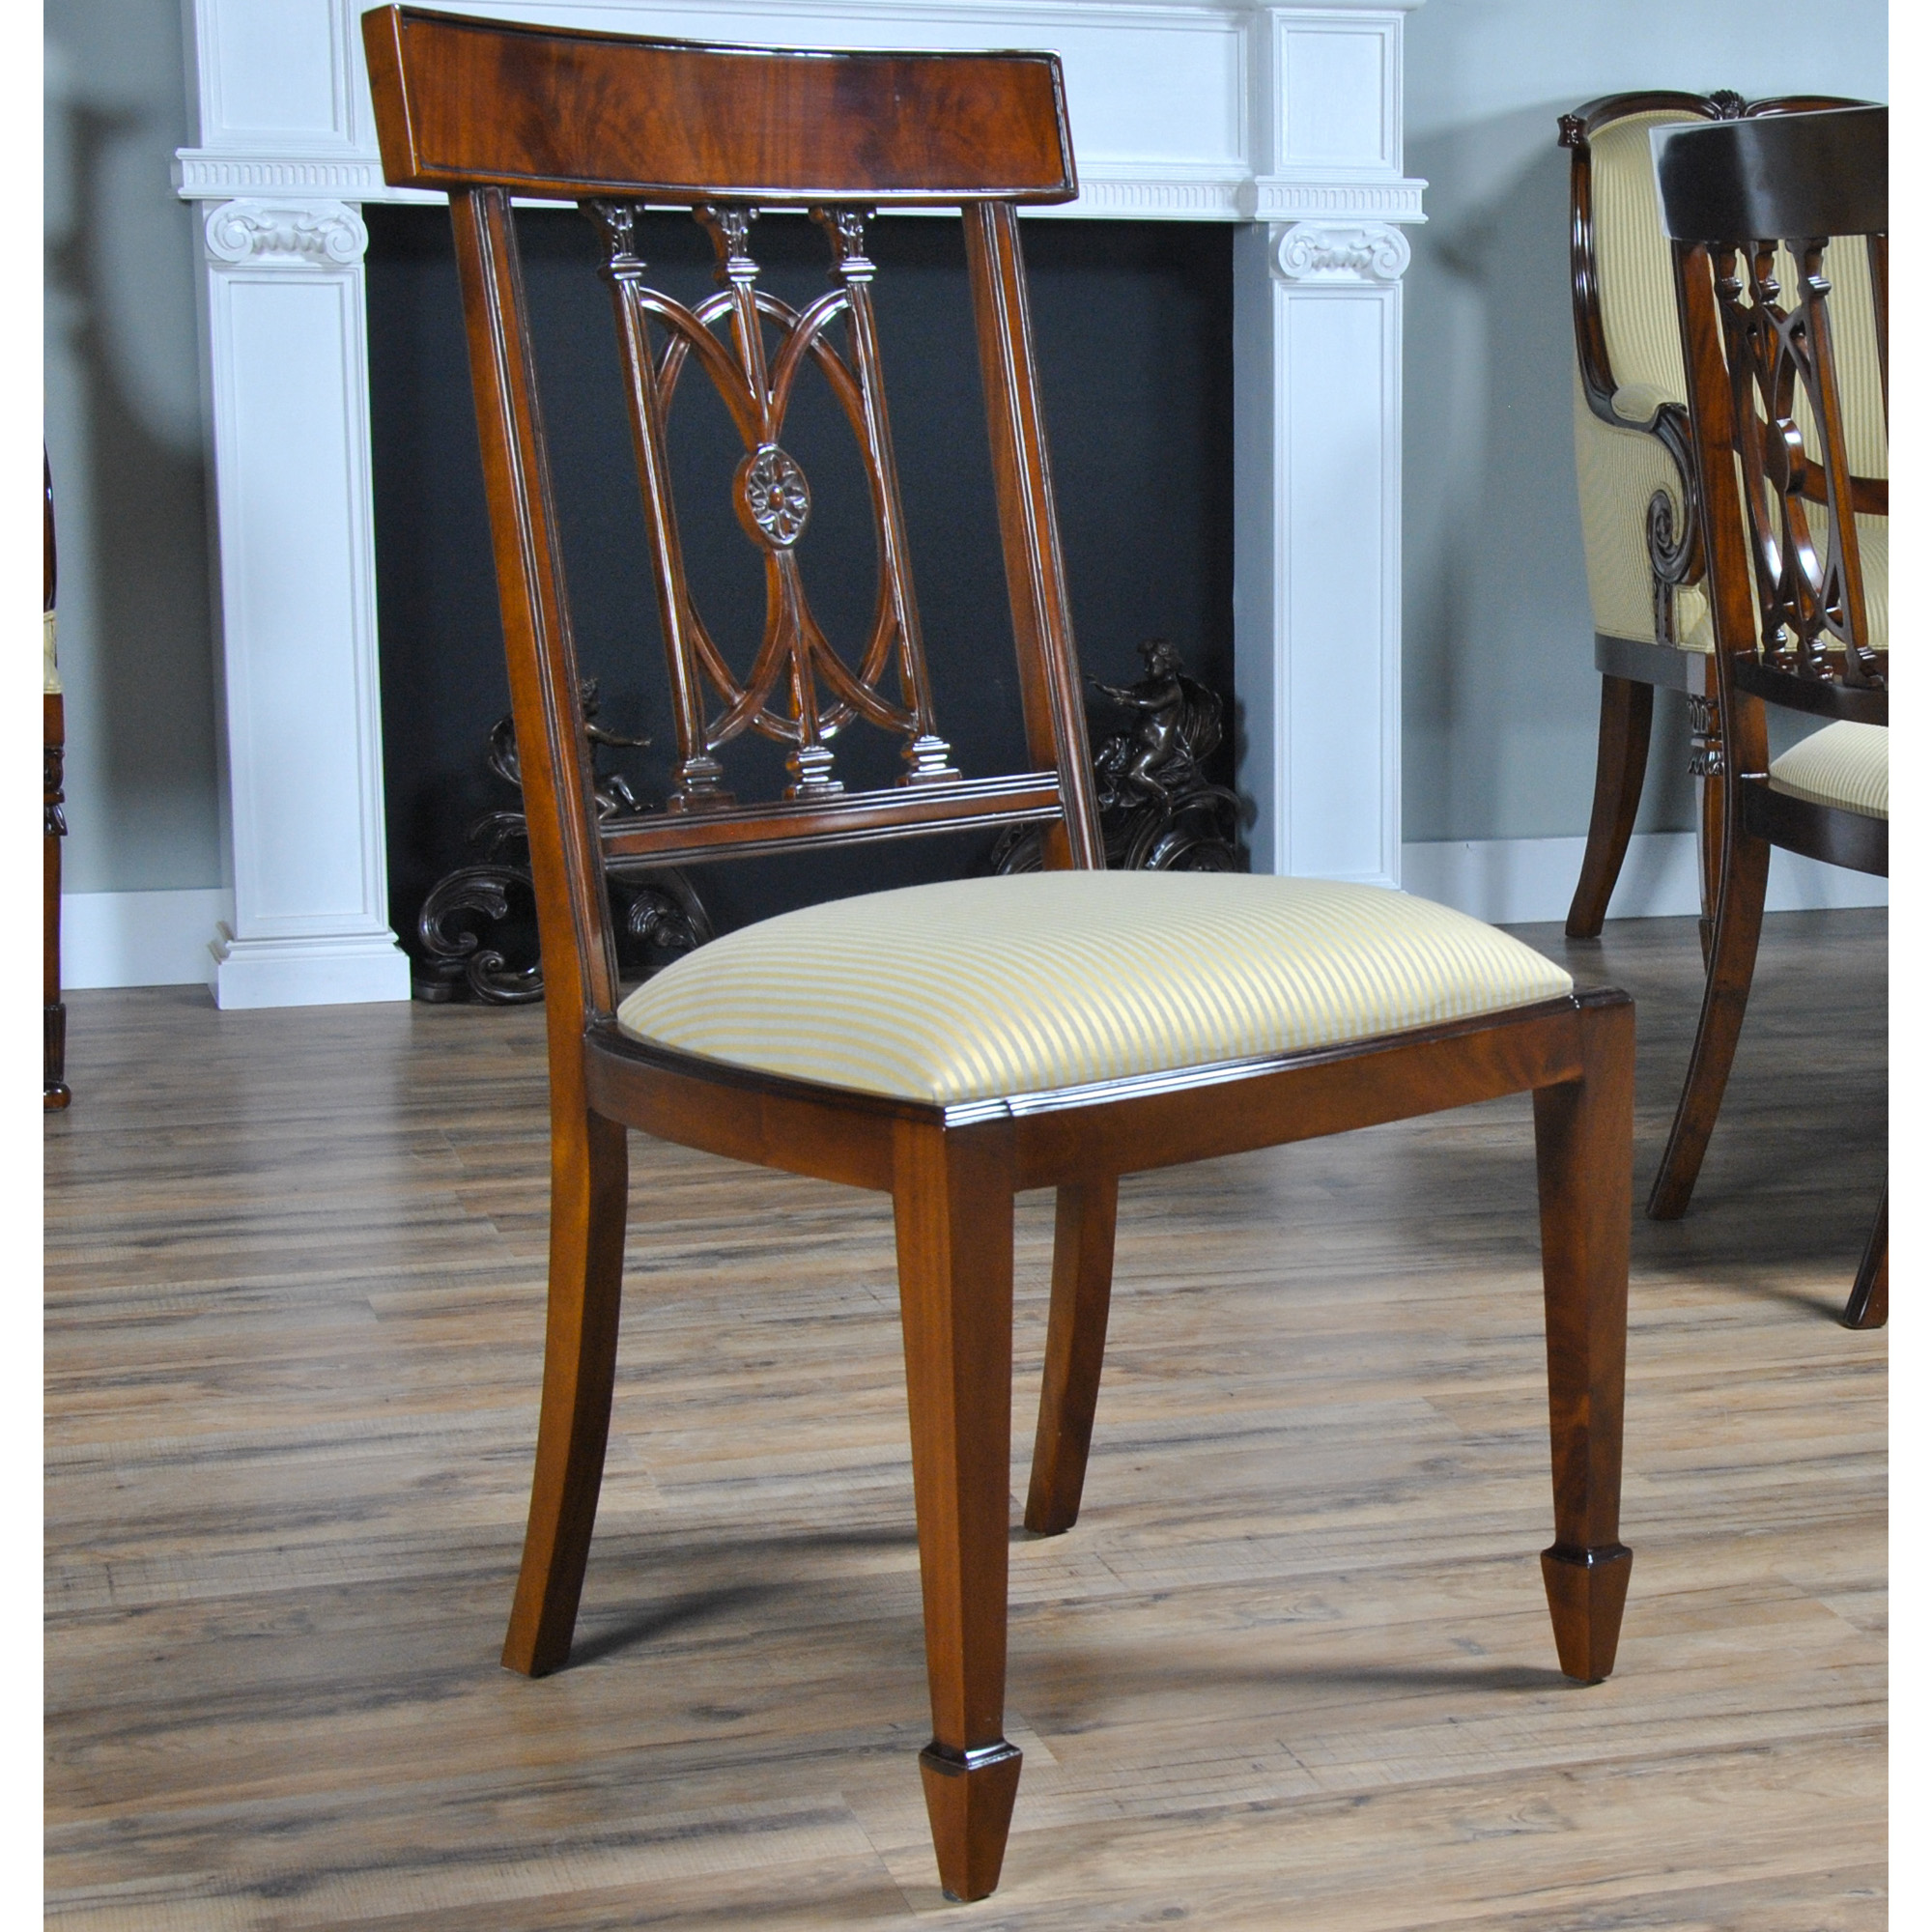 Hepplewhite Chair Home Furniture Dining Room Chairs Mahogany